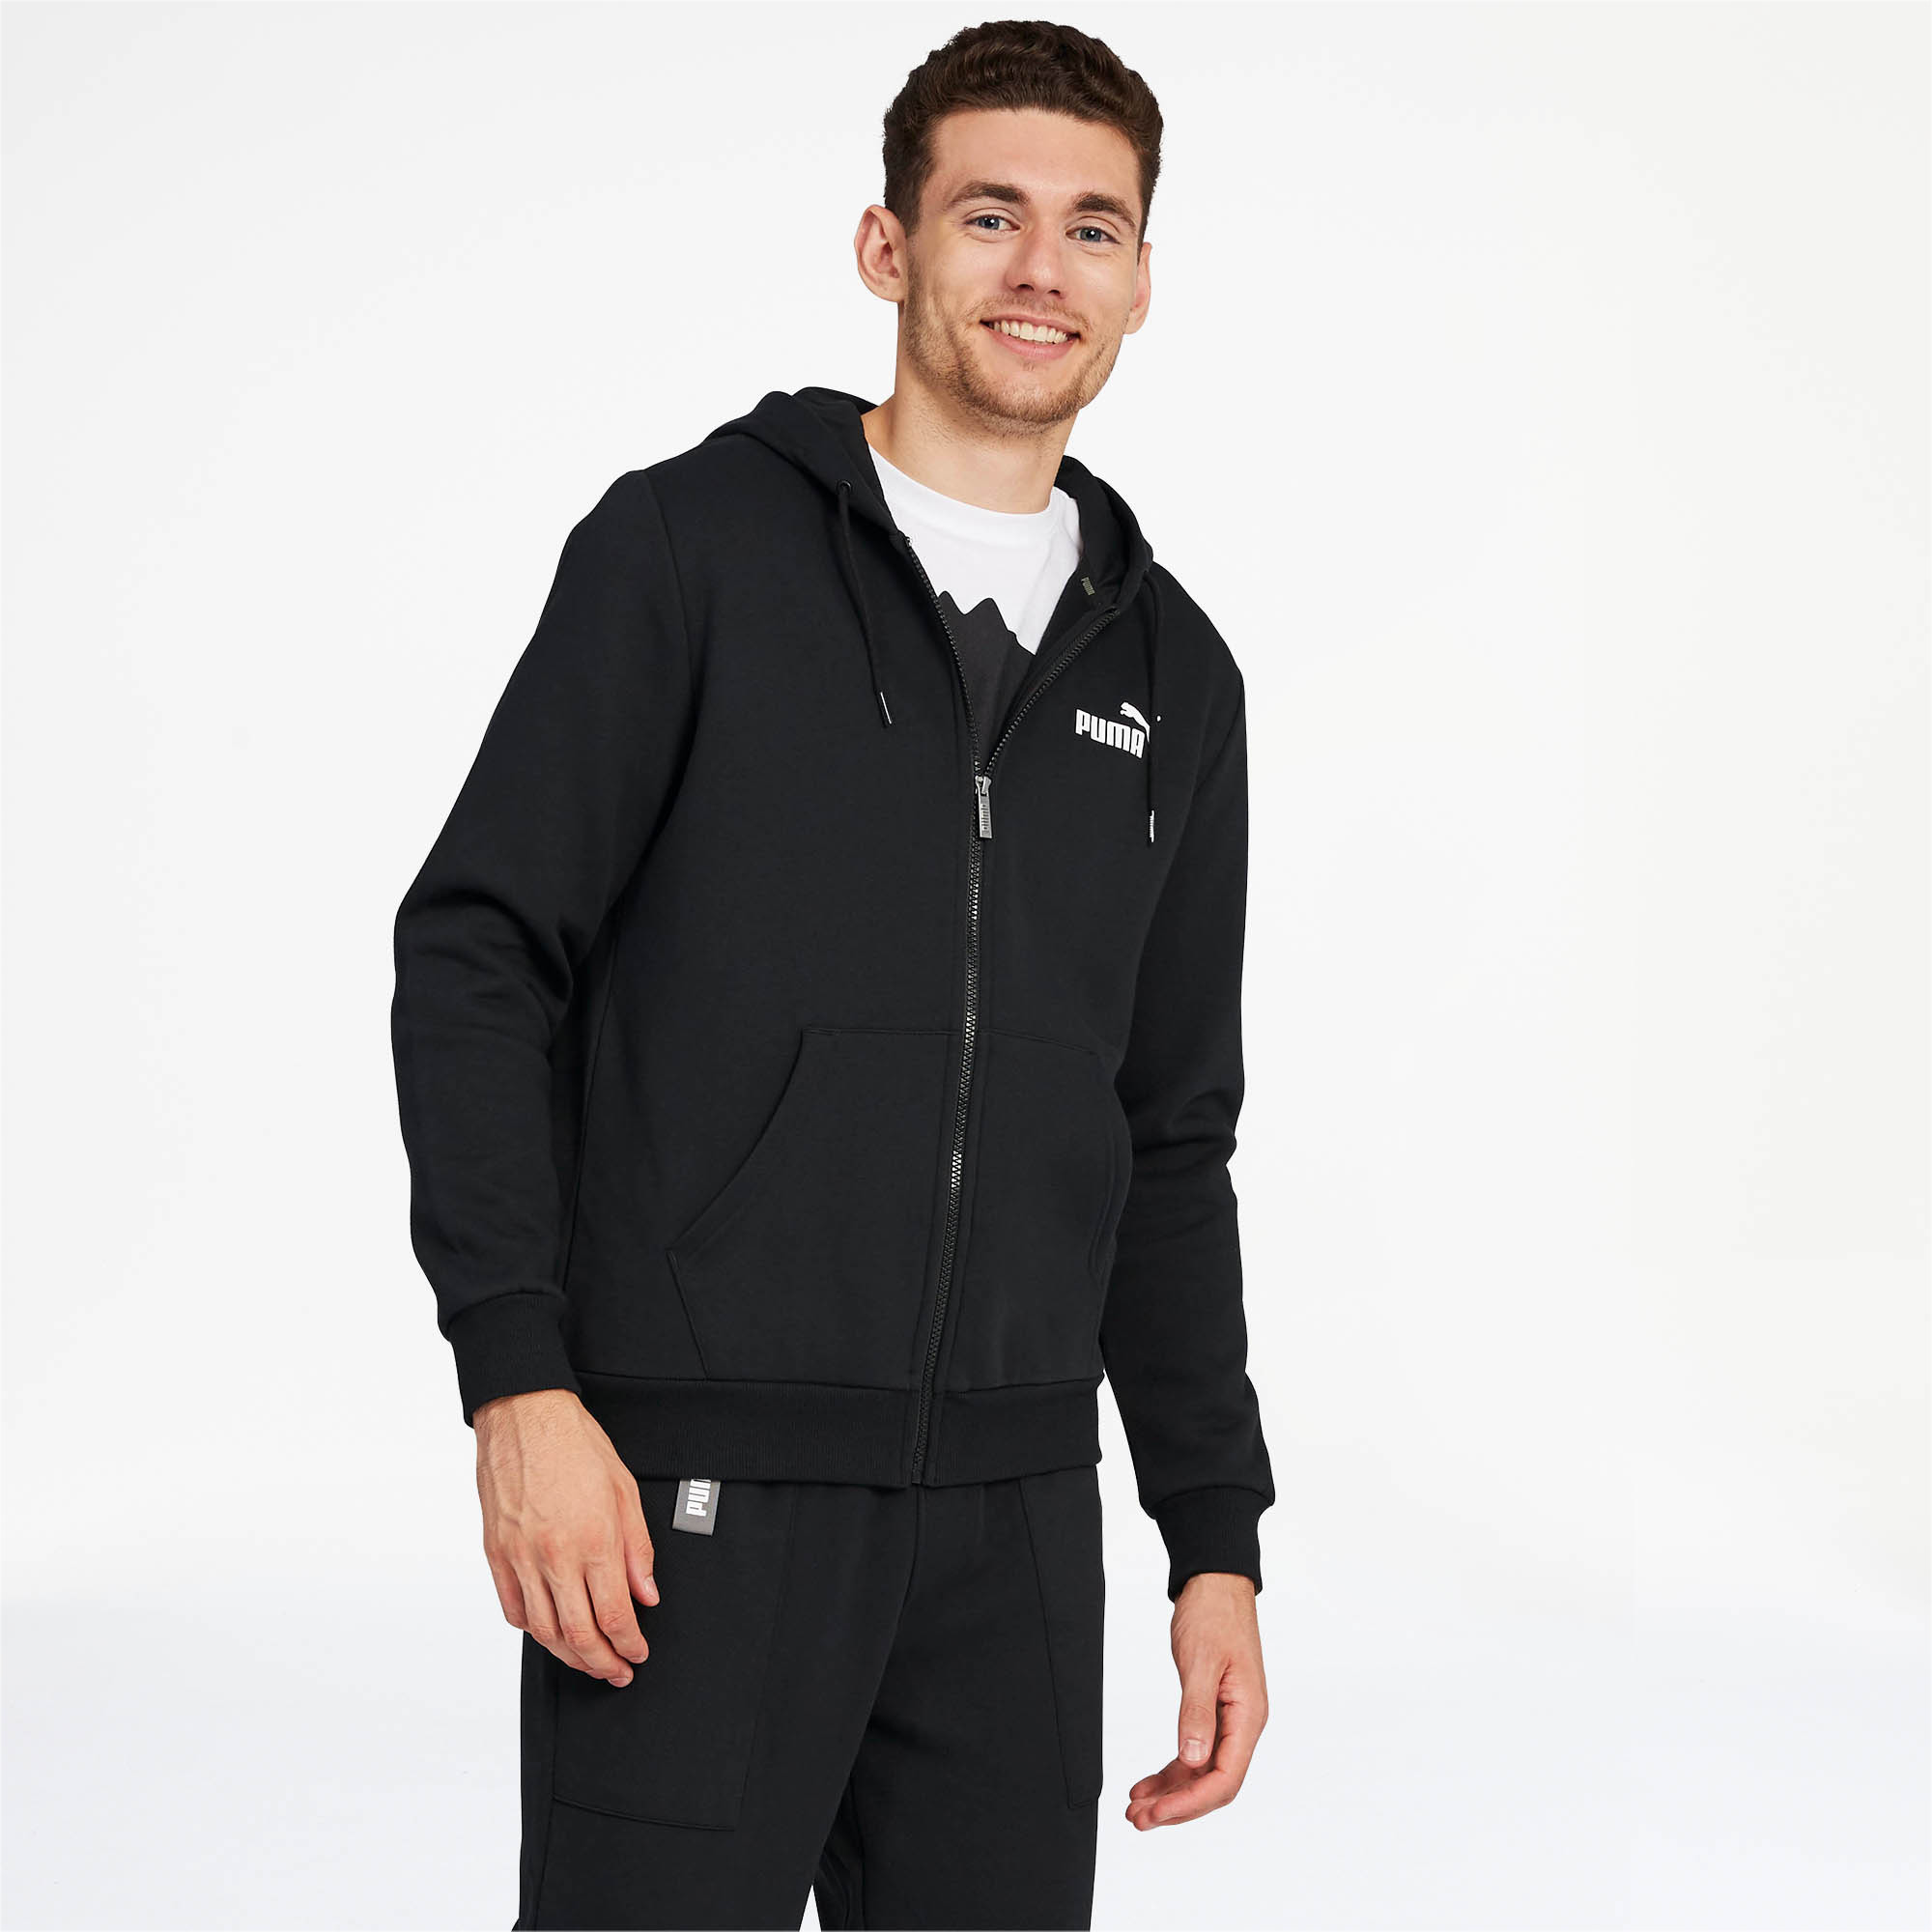 PUMA-Essentials-Men-039-s-Hooded-Fleece-Jacket-Men-Sweat-Basics thumbnail 4